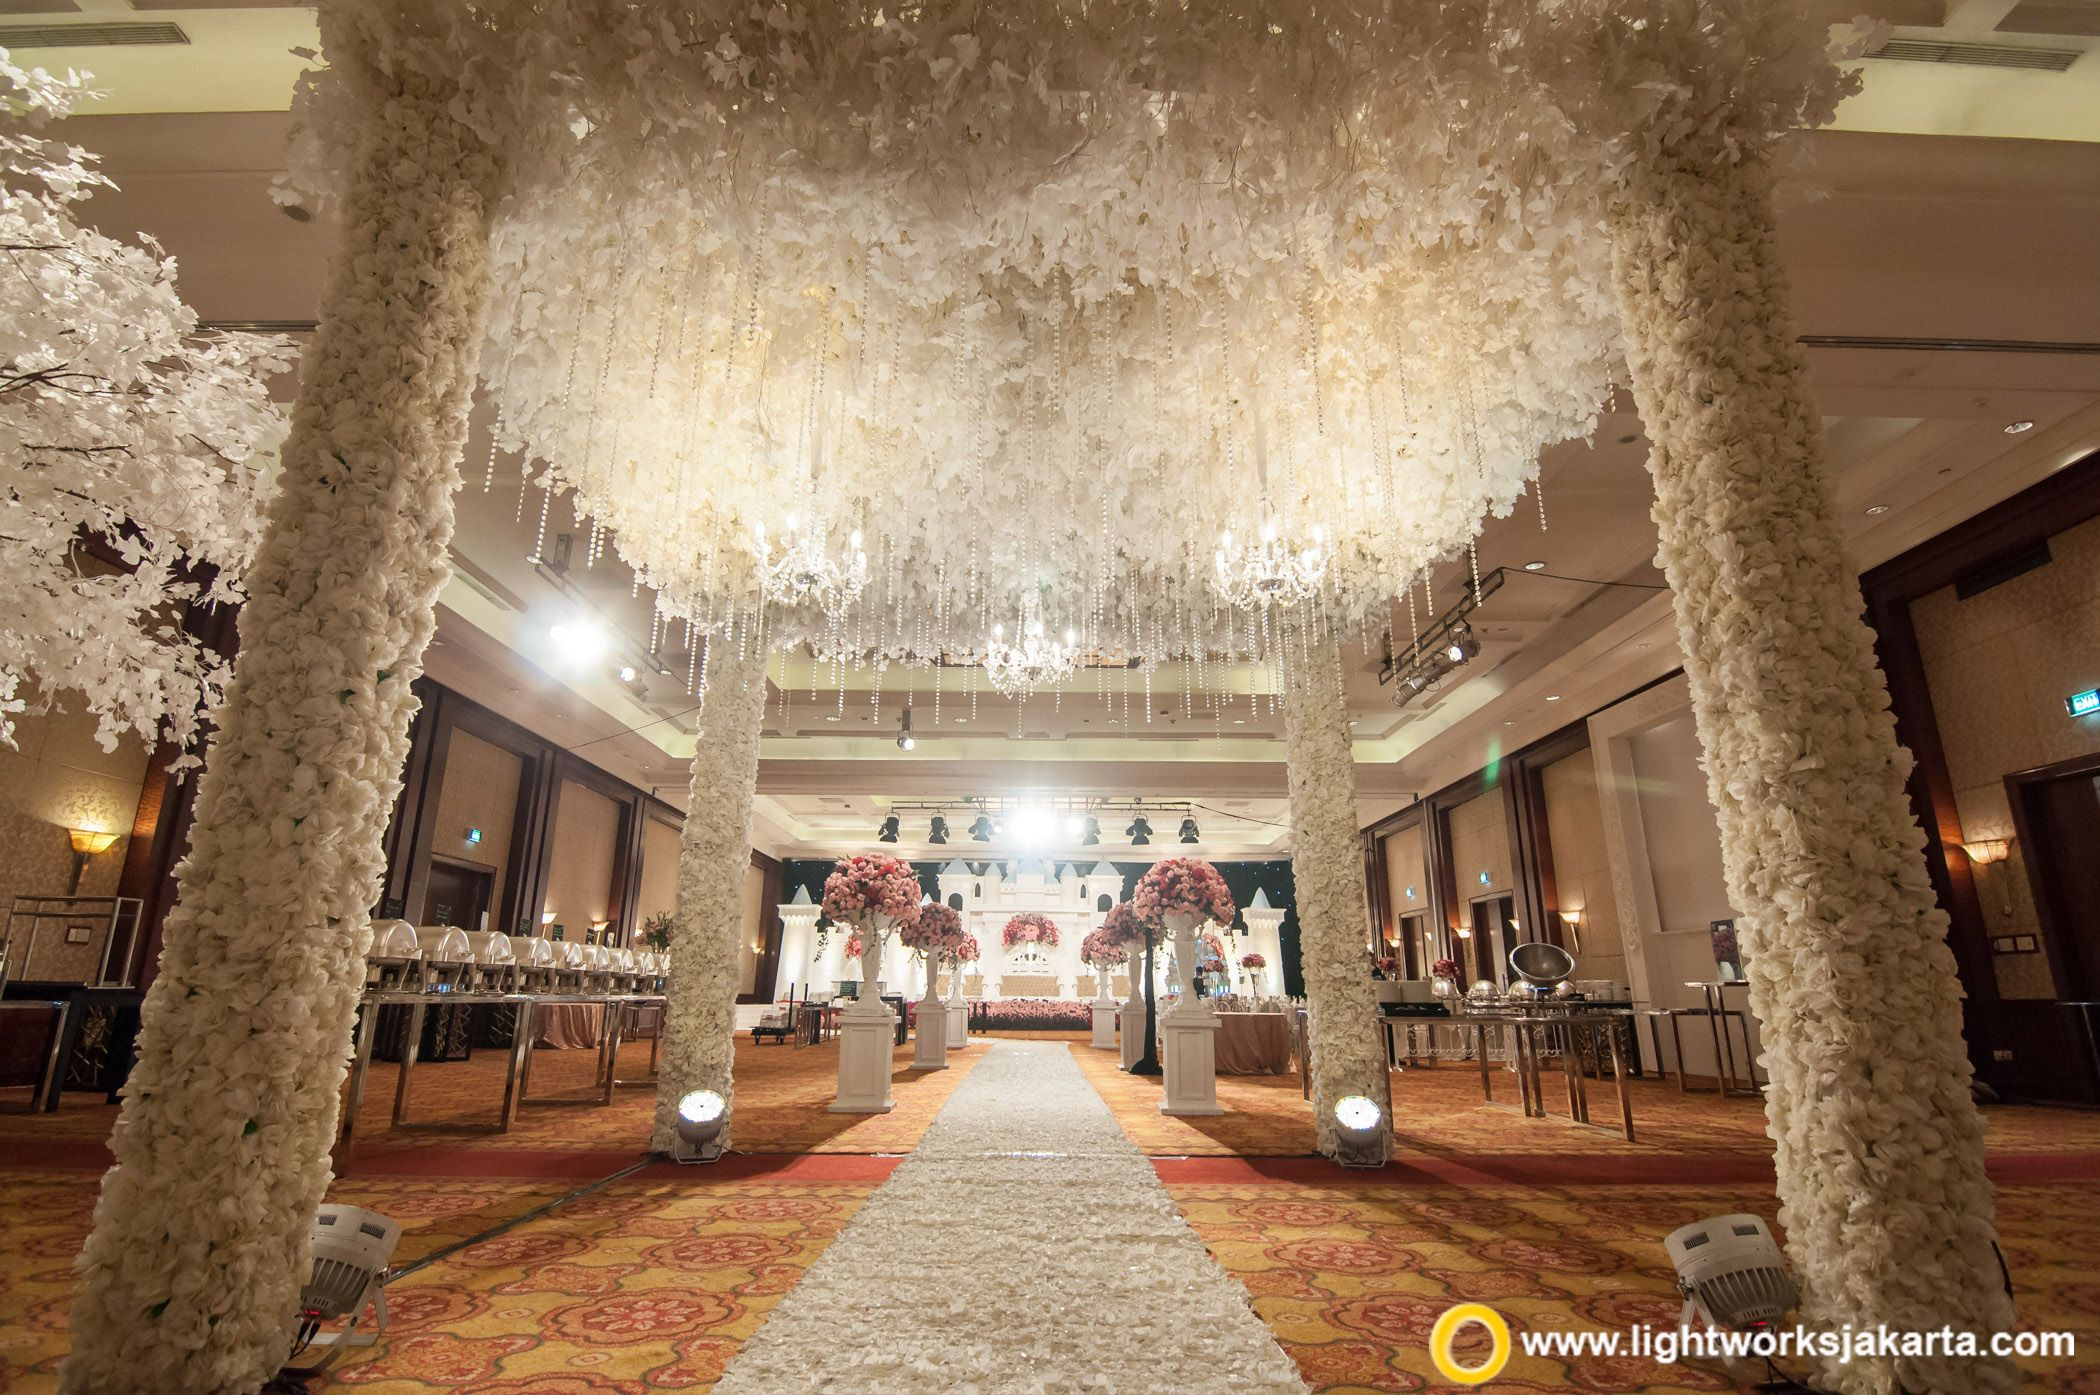 Simple yet gorgeous wedding foyer at the bali room kempinski simple yet gorgeous wedding foyer at the bali room kempinski hotel jakarta made by vica decoration and lighting designer from lightworks pinterest junglespirit